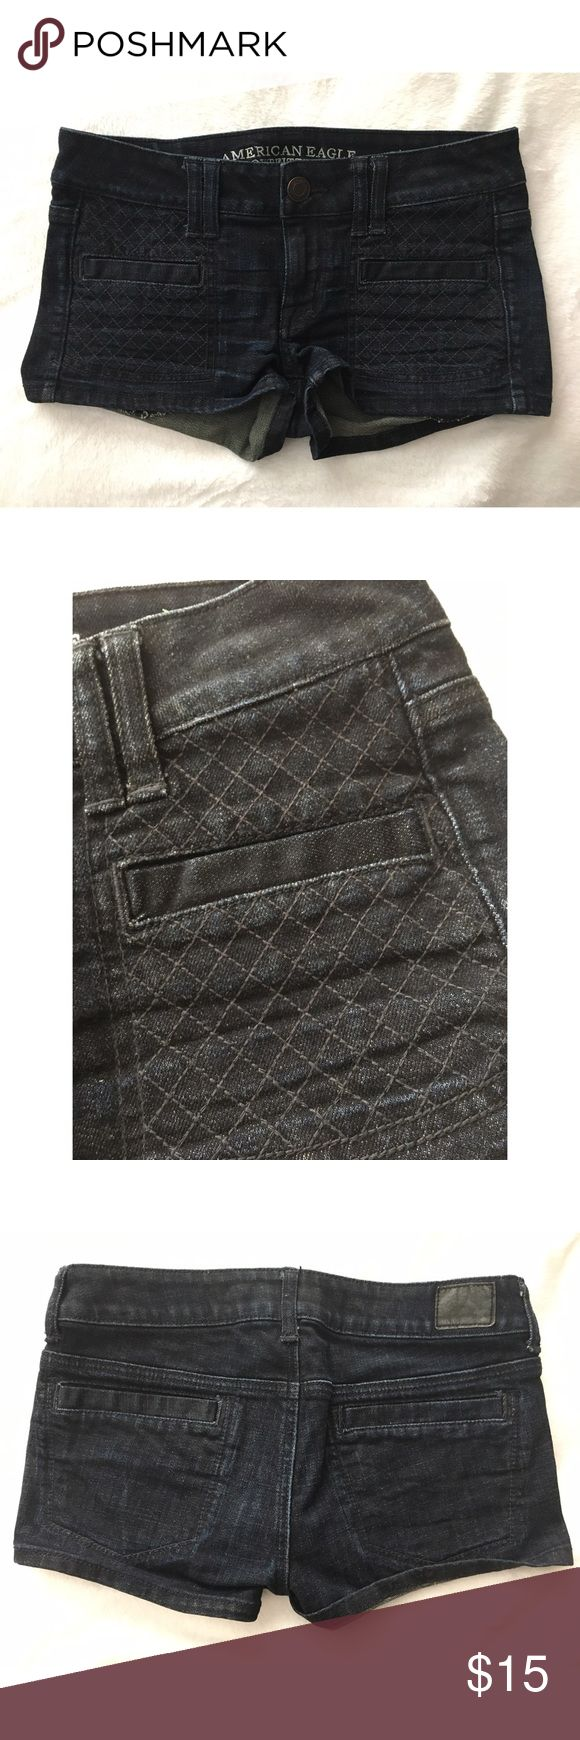 American Eagle Lattice Front Denim Dark Wash Short Excellent used condition! Comes from a pet and smoke free home. No trades. ❤️ Item location: bin 2. American Eagle Outfitters Shorts Jean Shorts